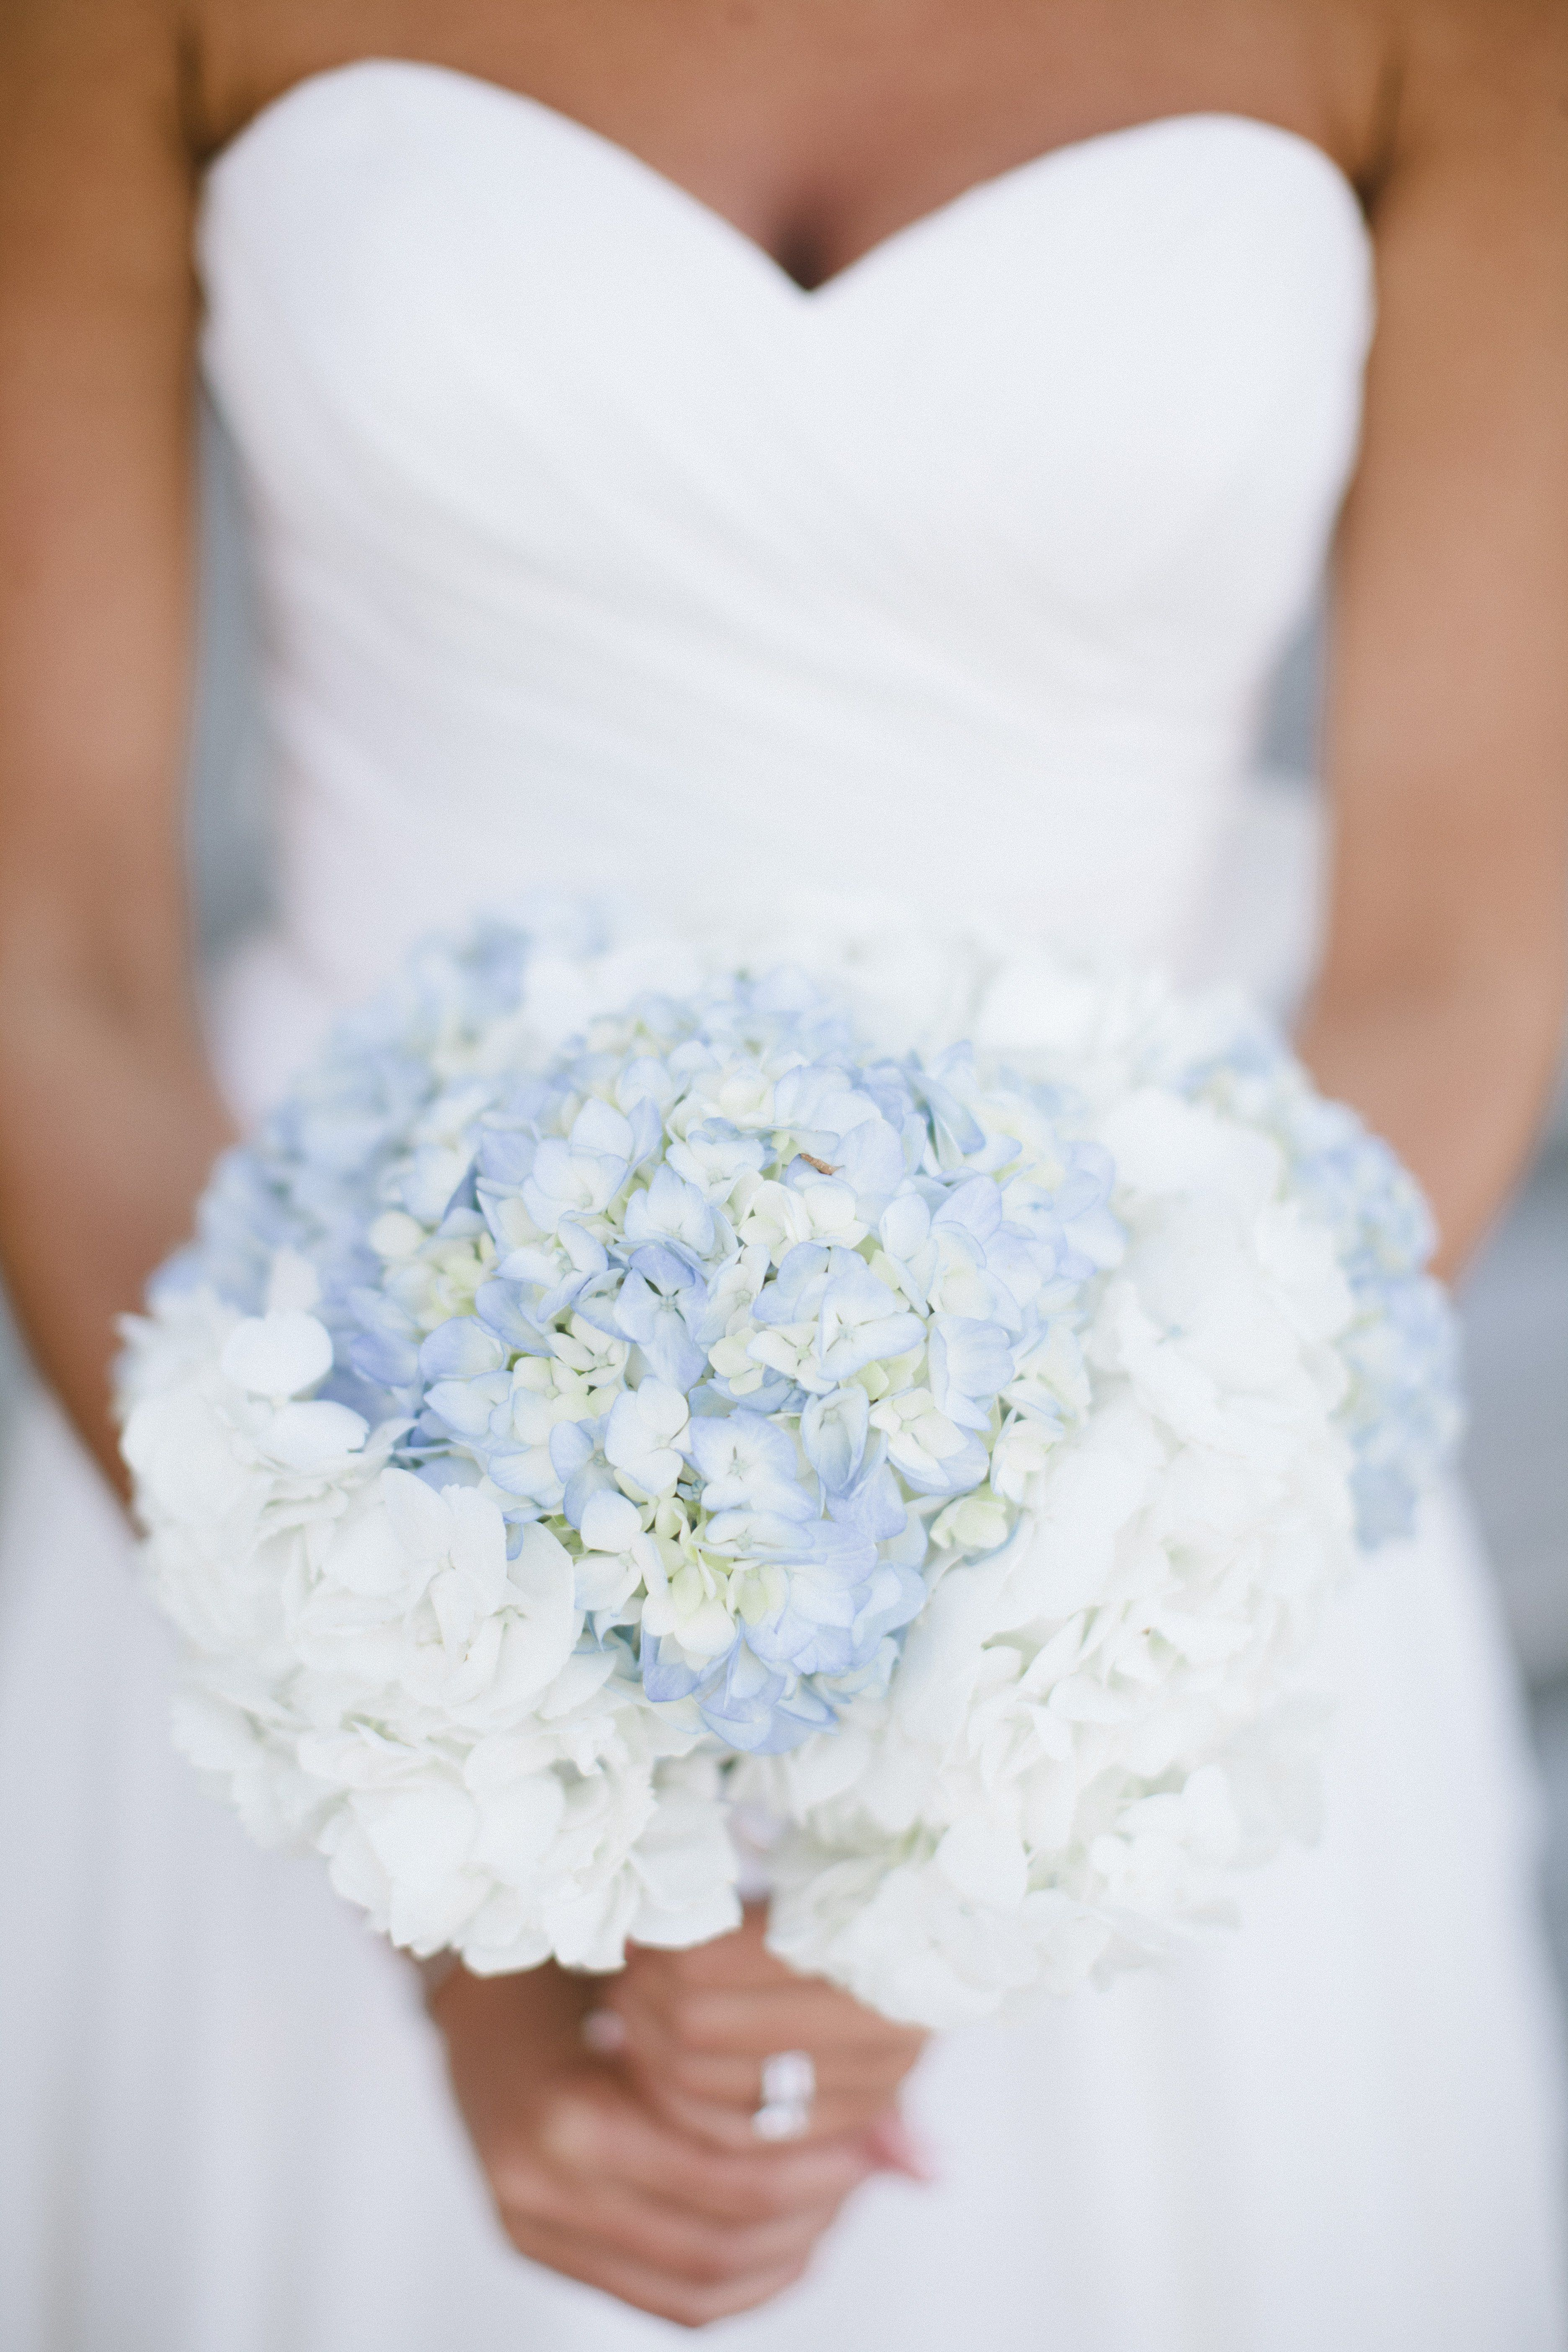 Blue And White Hydrangea Bridal Bouquet Blue Hydrangea Bridal Bouquet Blue Wedding Bouquet Hydrangeas Bridal